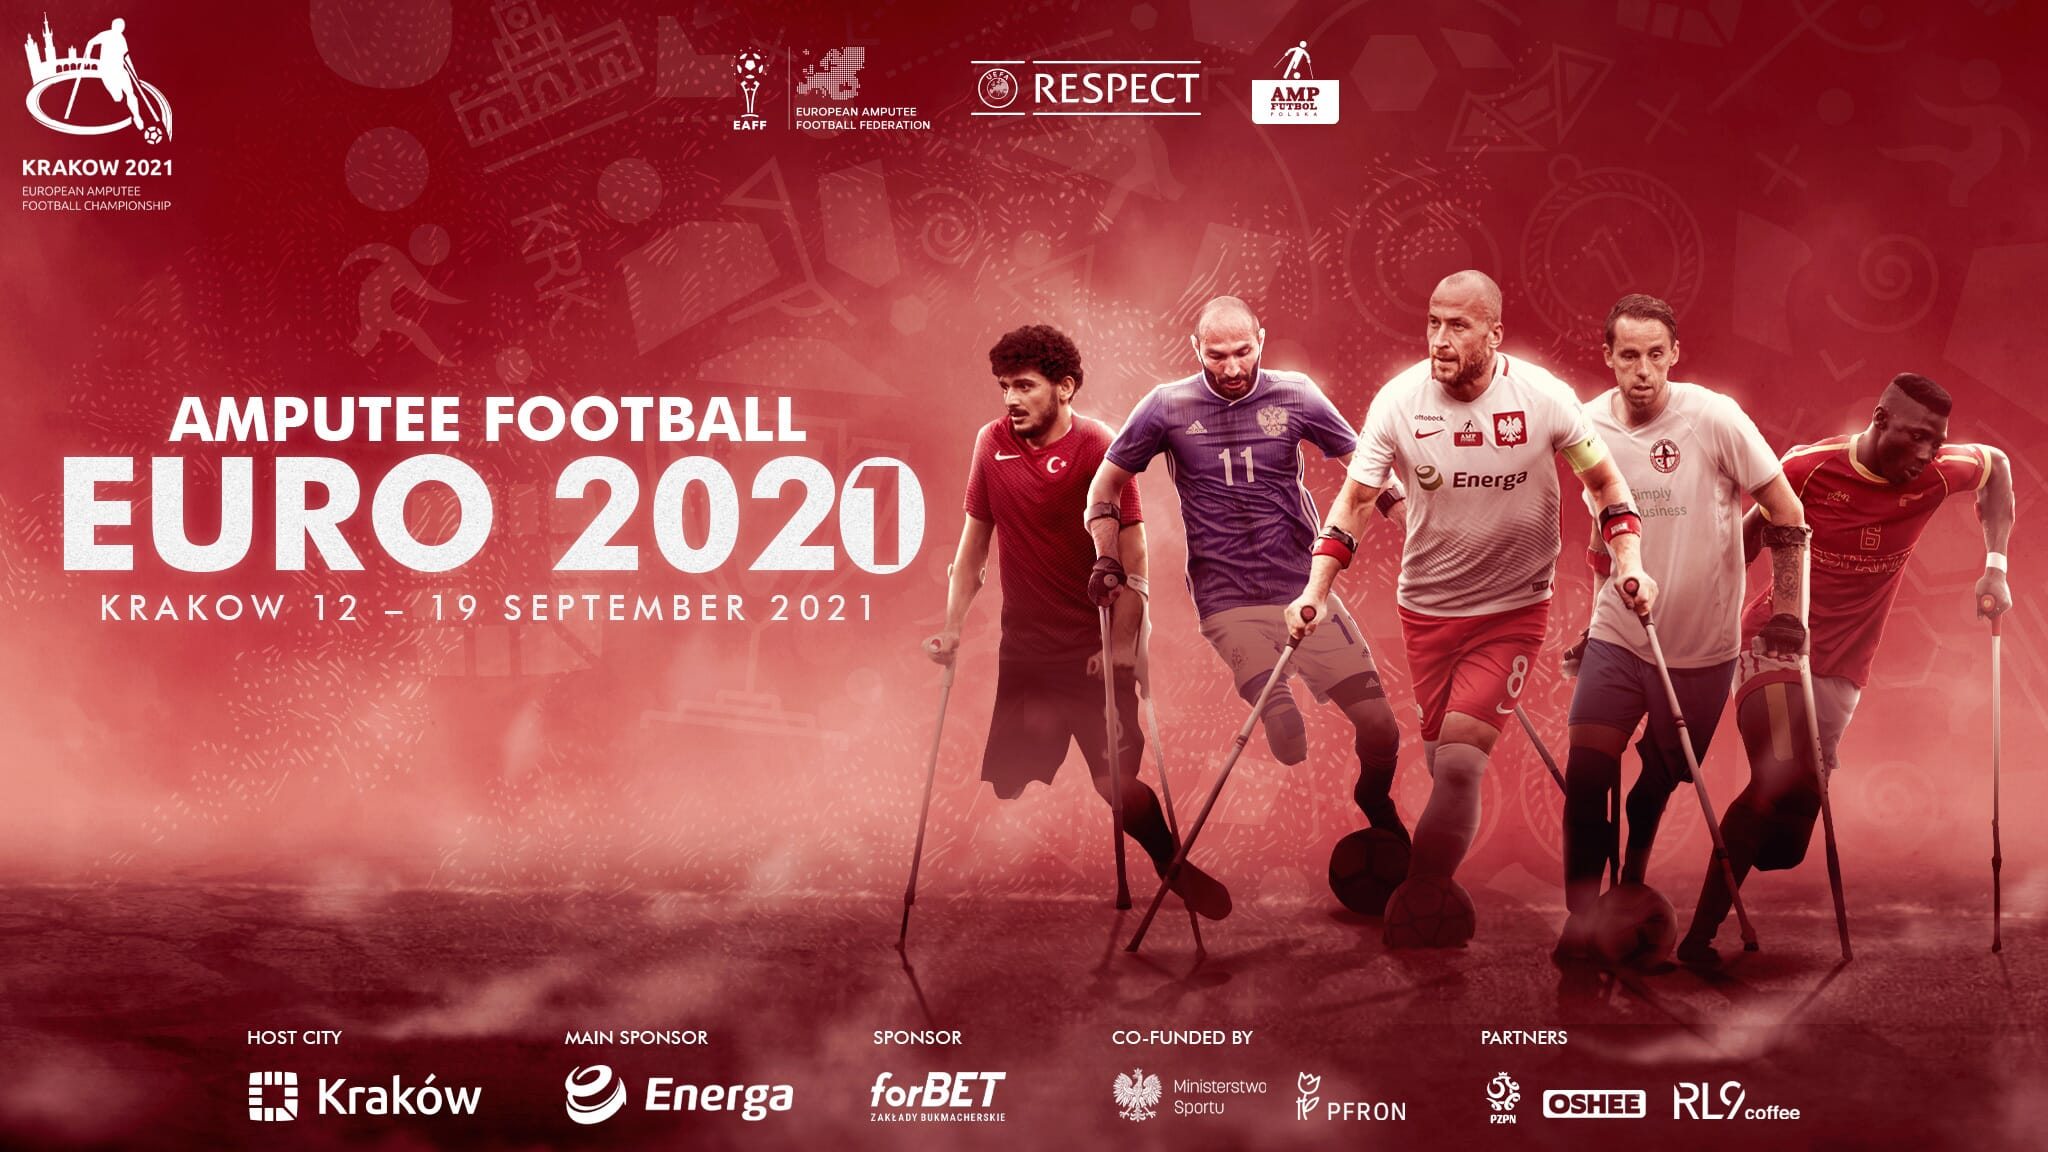 advert for the 2021 Amputee Football Euro taking place in Krakow from 12 - 19 September